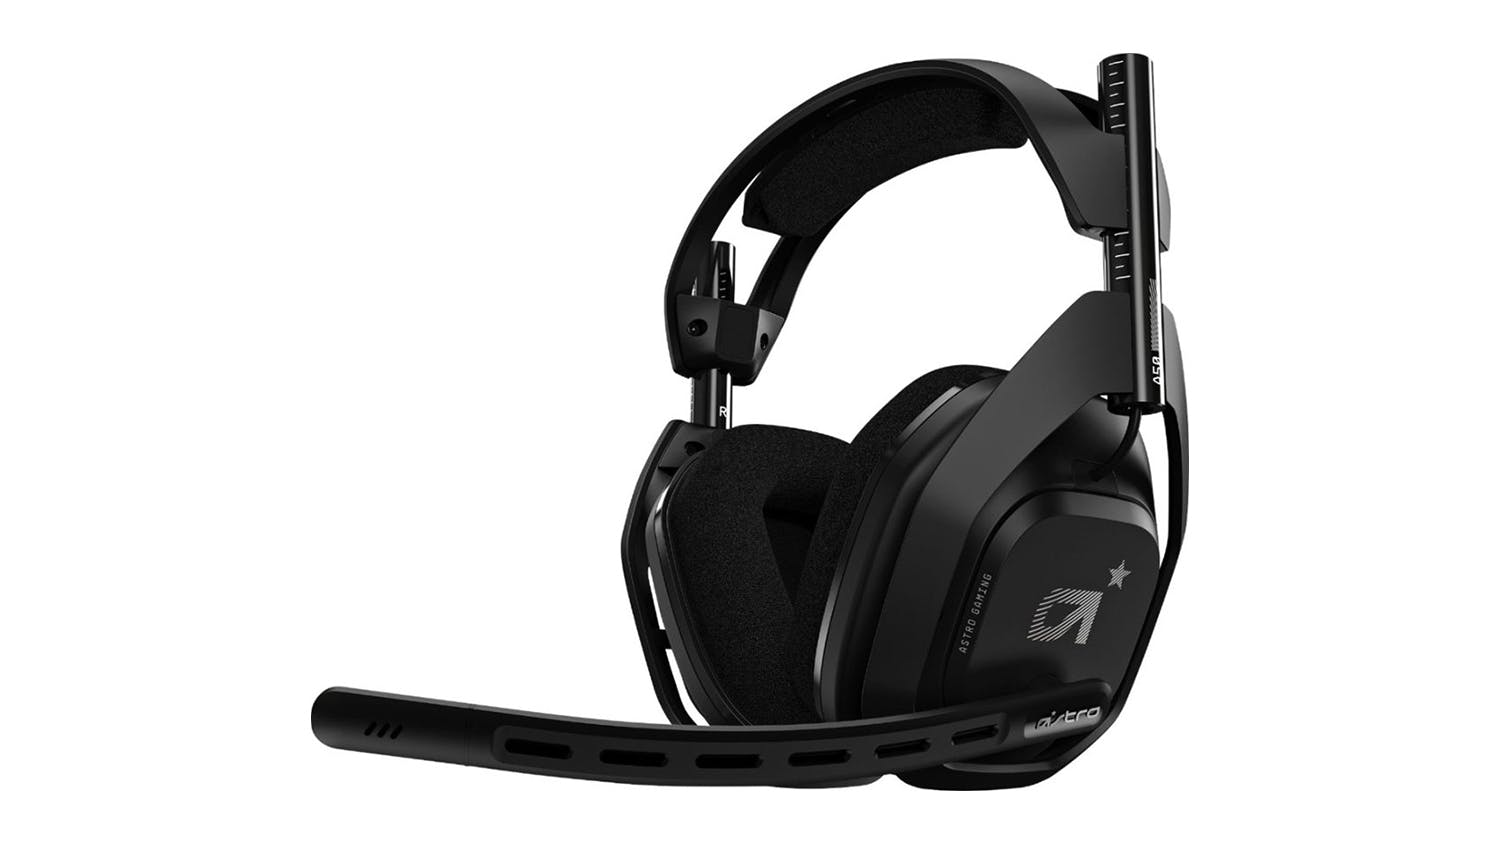 Astro A50 Gaming Headset for PS4 - Black Grey